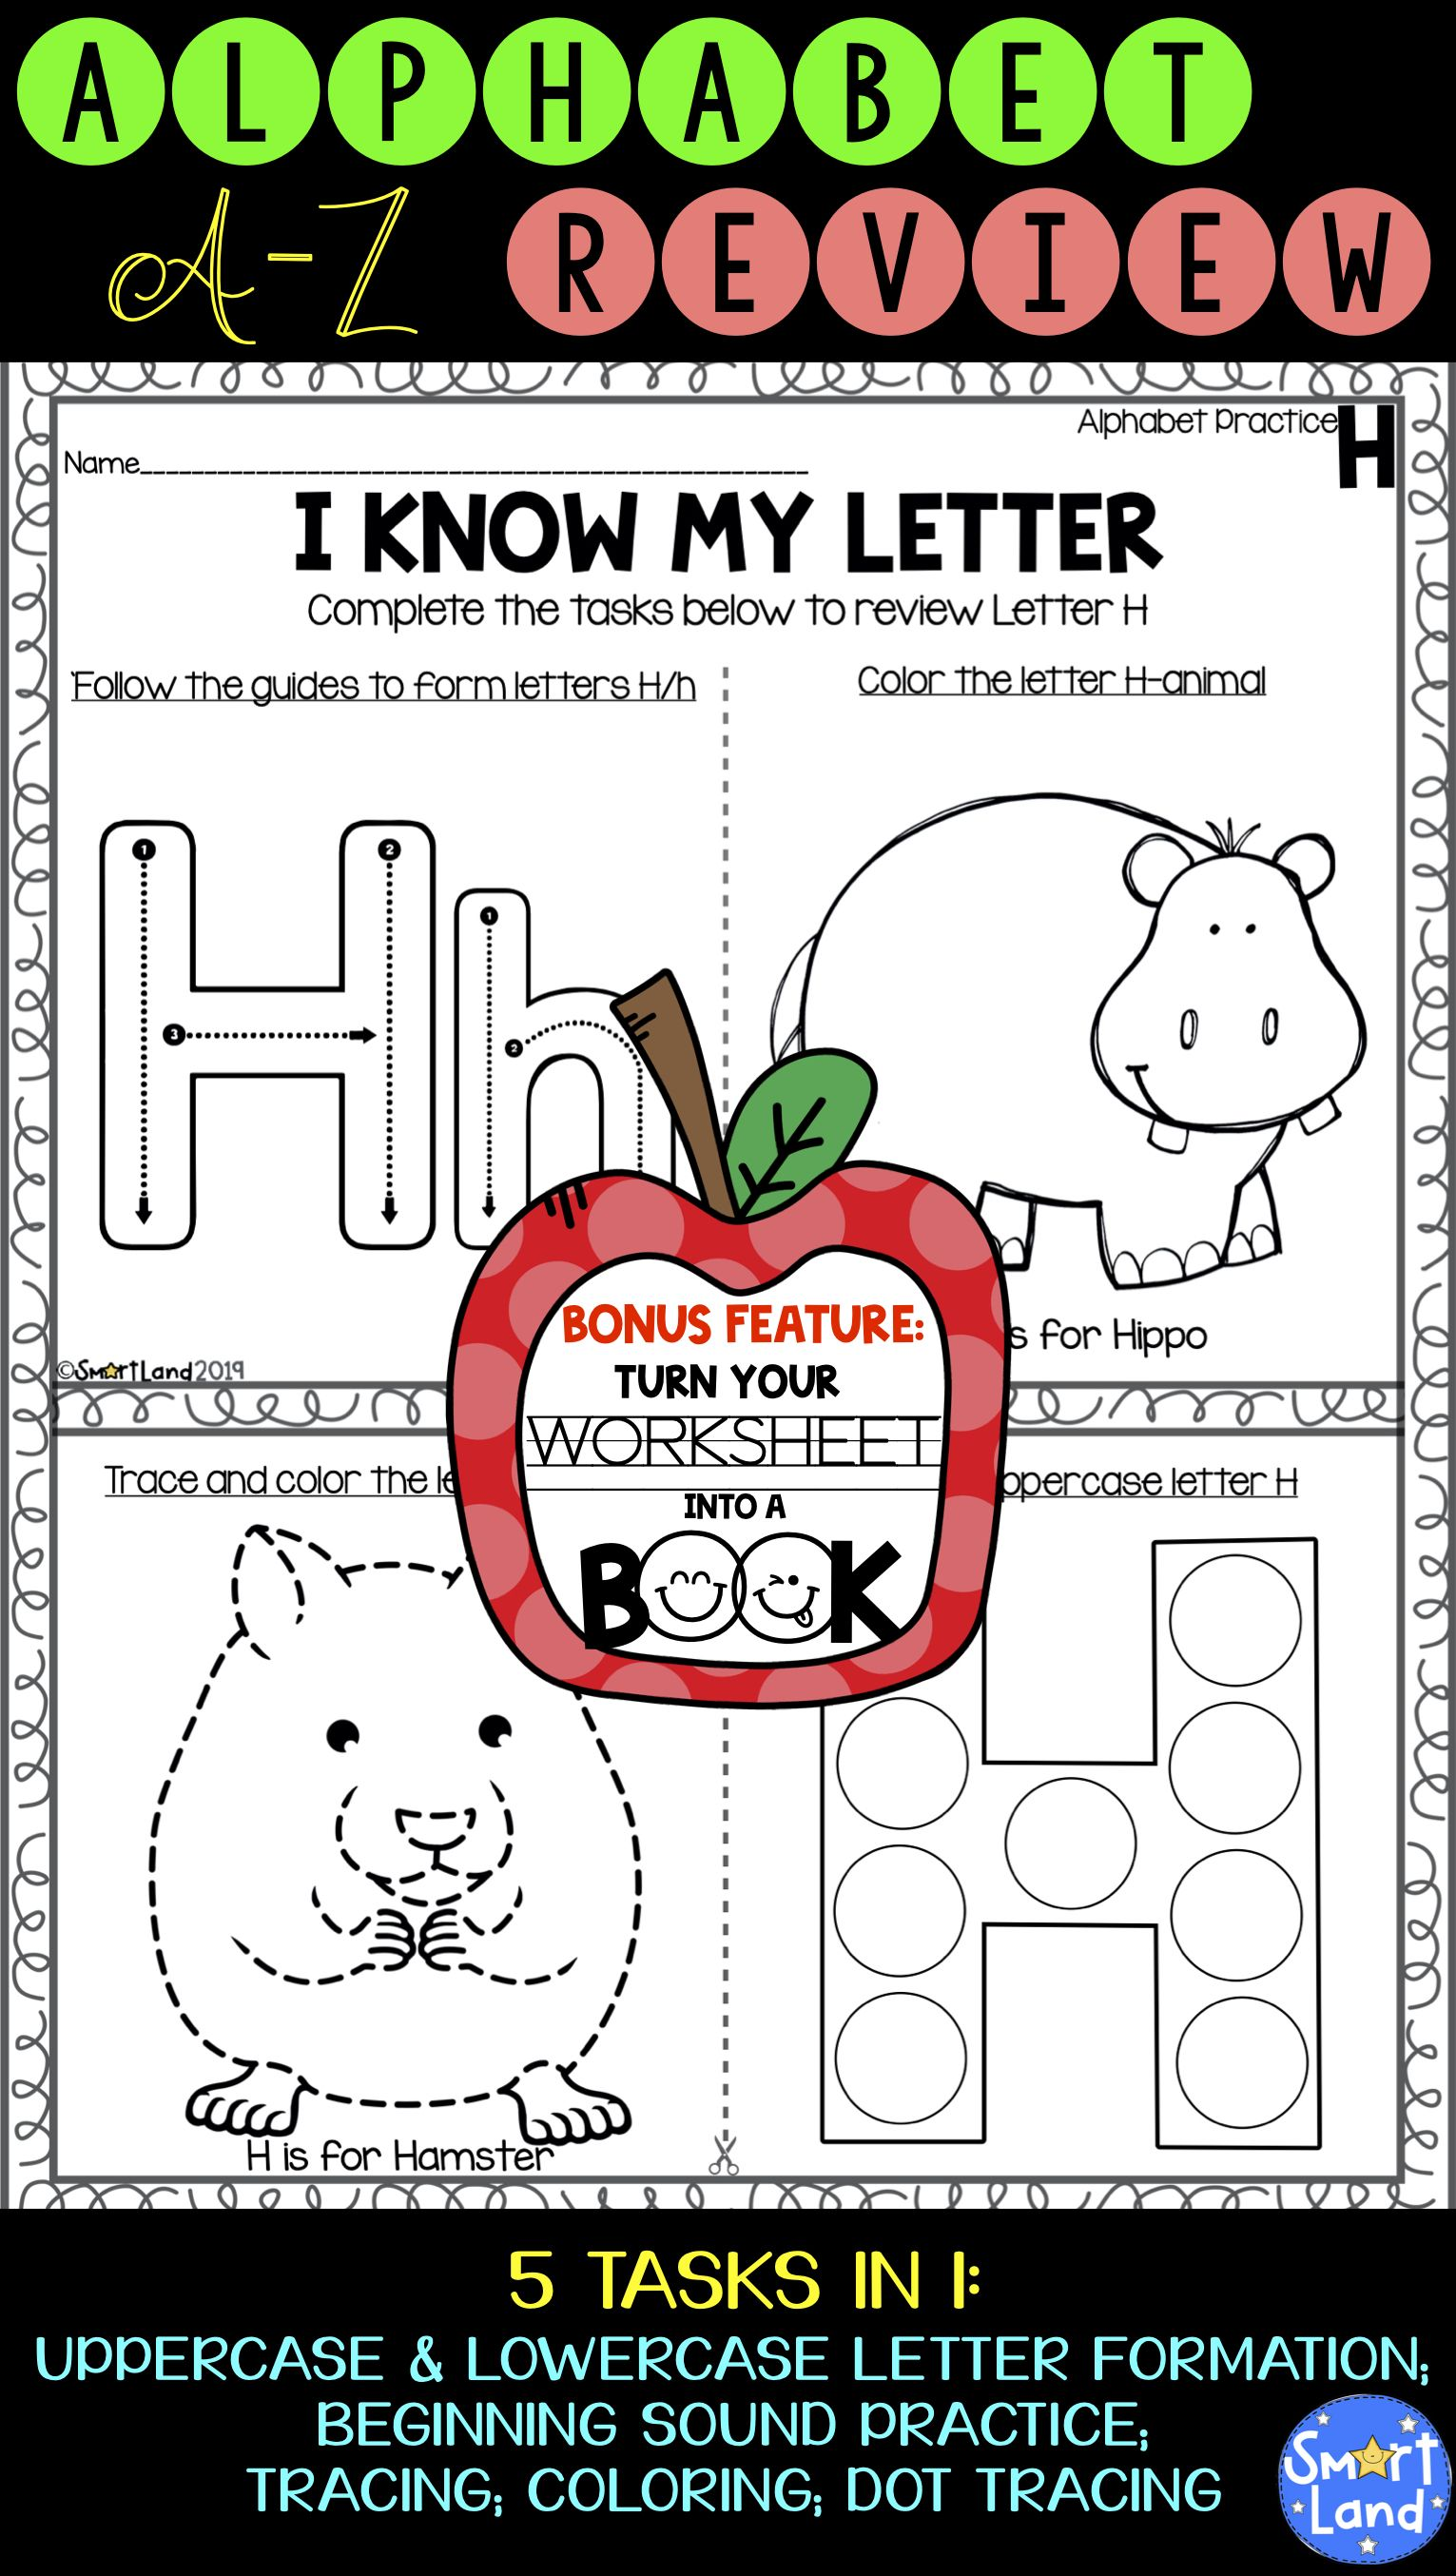 Alphabet Practice 2in1 Review Book With Images